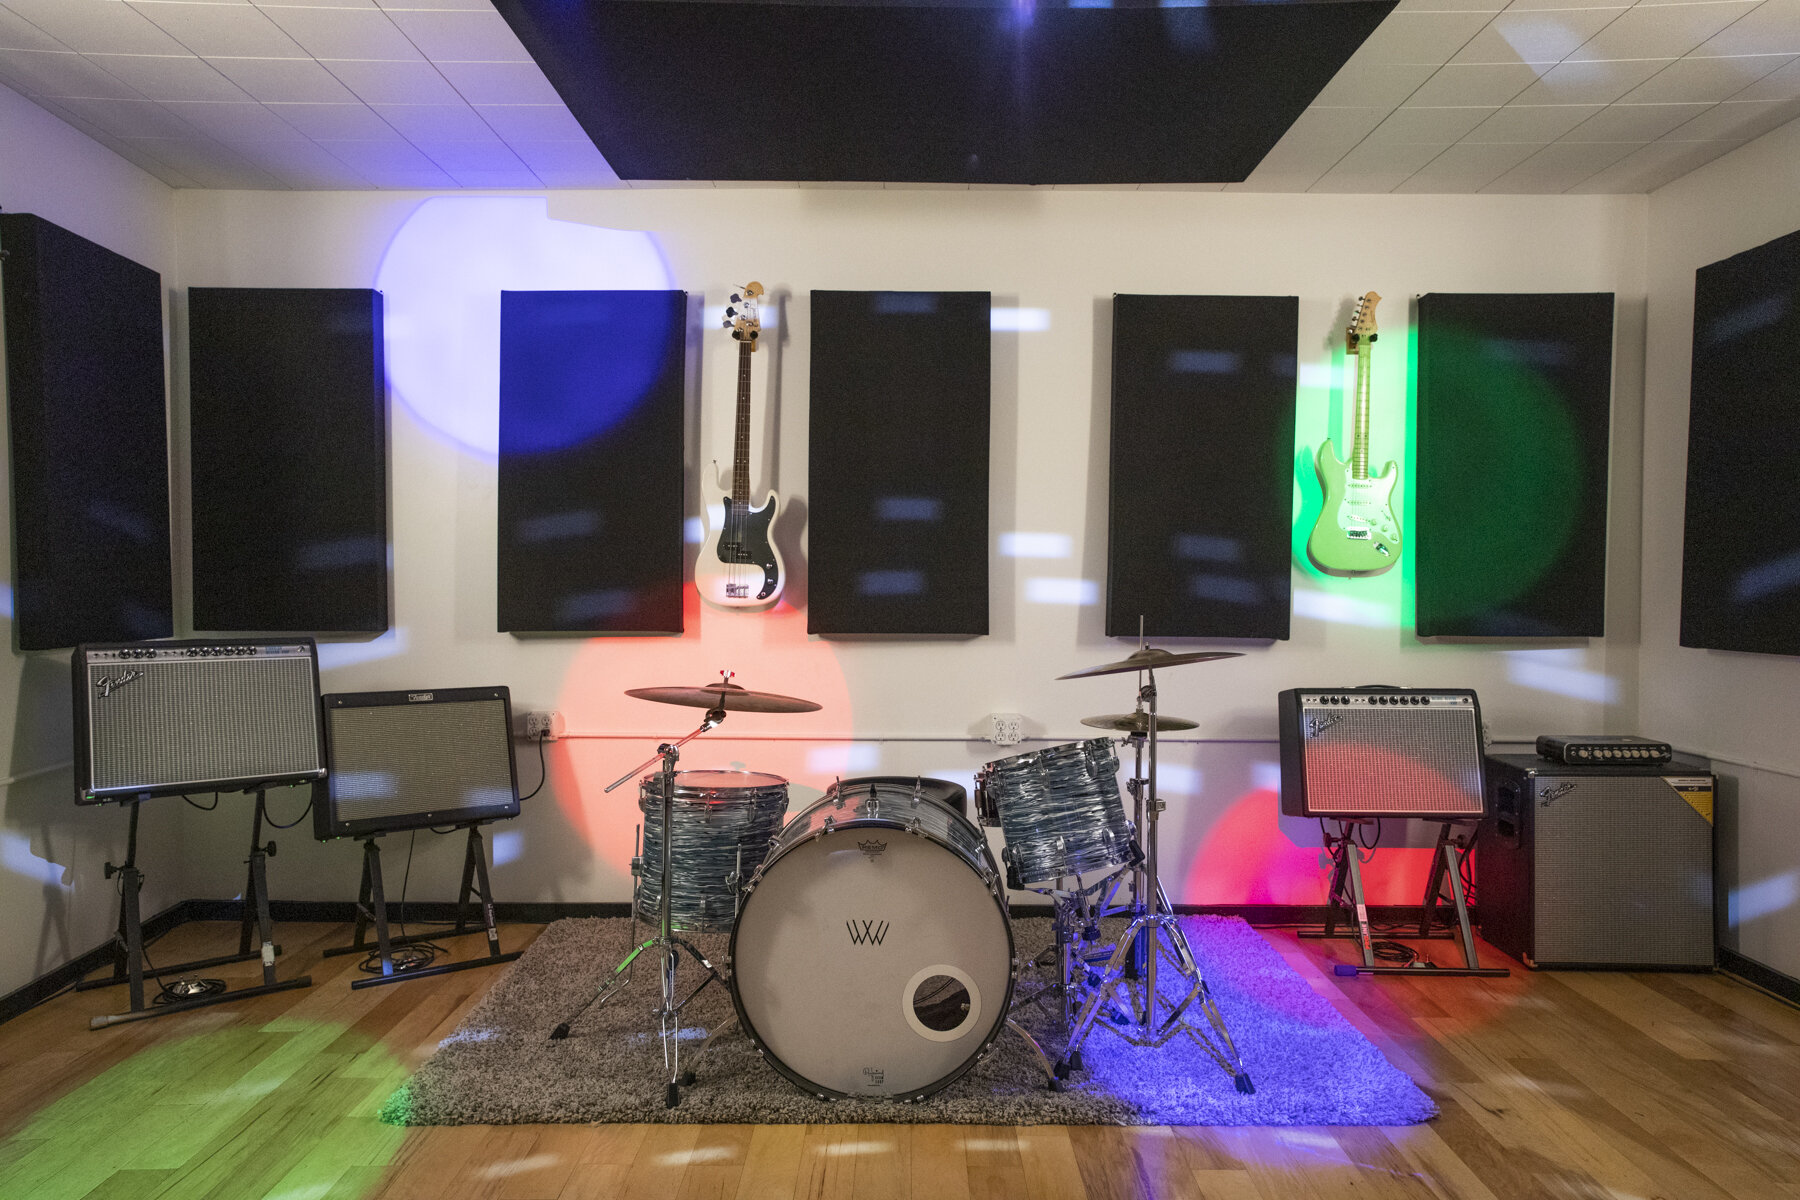 Room 1 - 17x17 $30 An HourFender Blues DeluxeFender VibroluxFender Hot RodFender RUMBLE 410 Cabinet & RUMBLE 800 HeadLudwig Drum Kit (26, 14, 16; 14 x 6 1/2 snare)Behringer consoleJBL PA SystemStage Lighting Track and Programmable DMX Controller